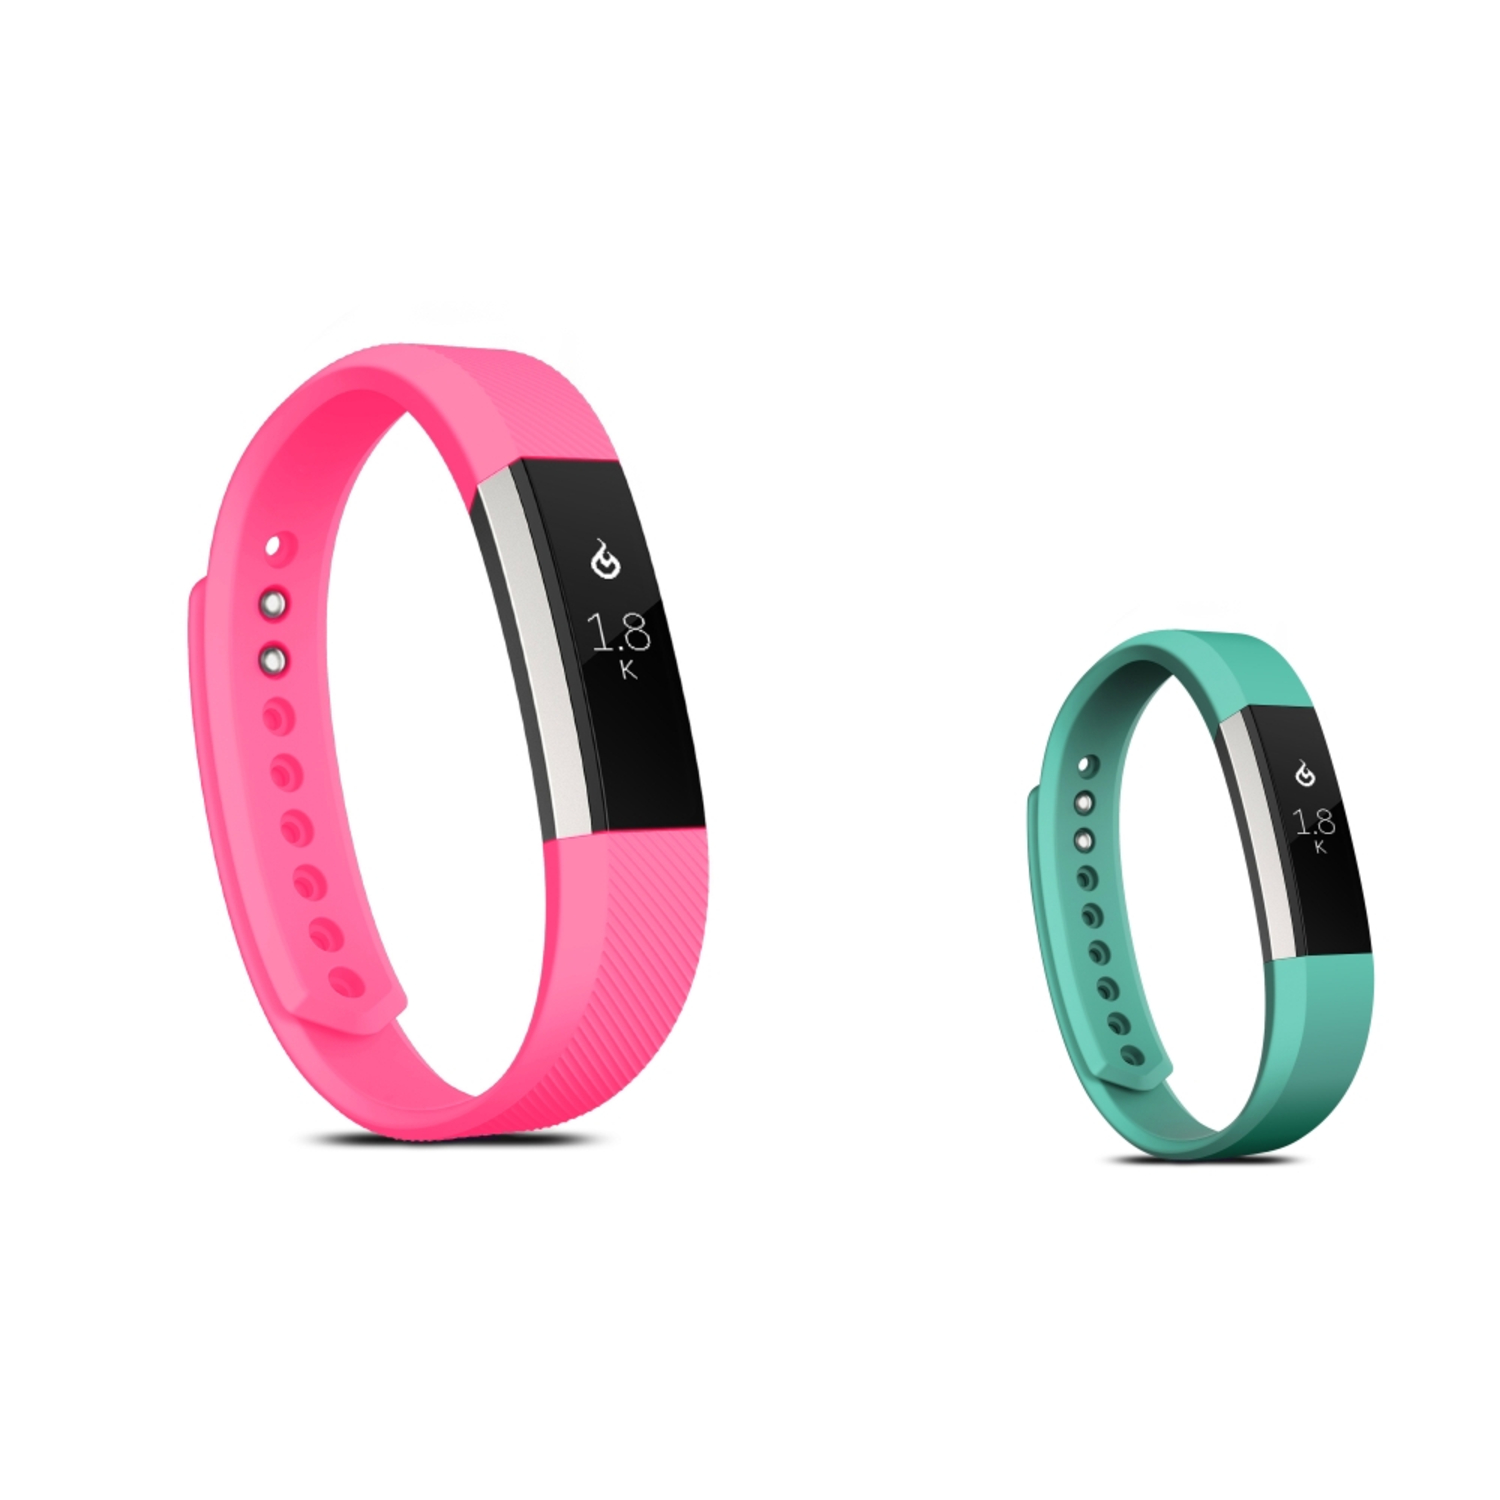 Zodaca Soft Rubber Adjustable Wristbands Watch Band Strap For Fitbit Alta HR / Alta SMALL Size - Hot Pink + Mint Green